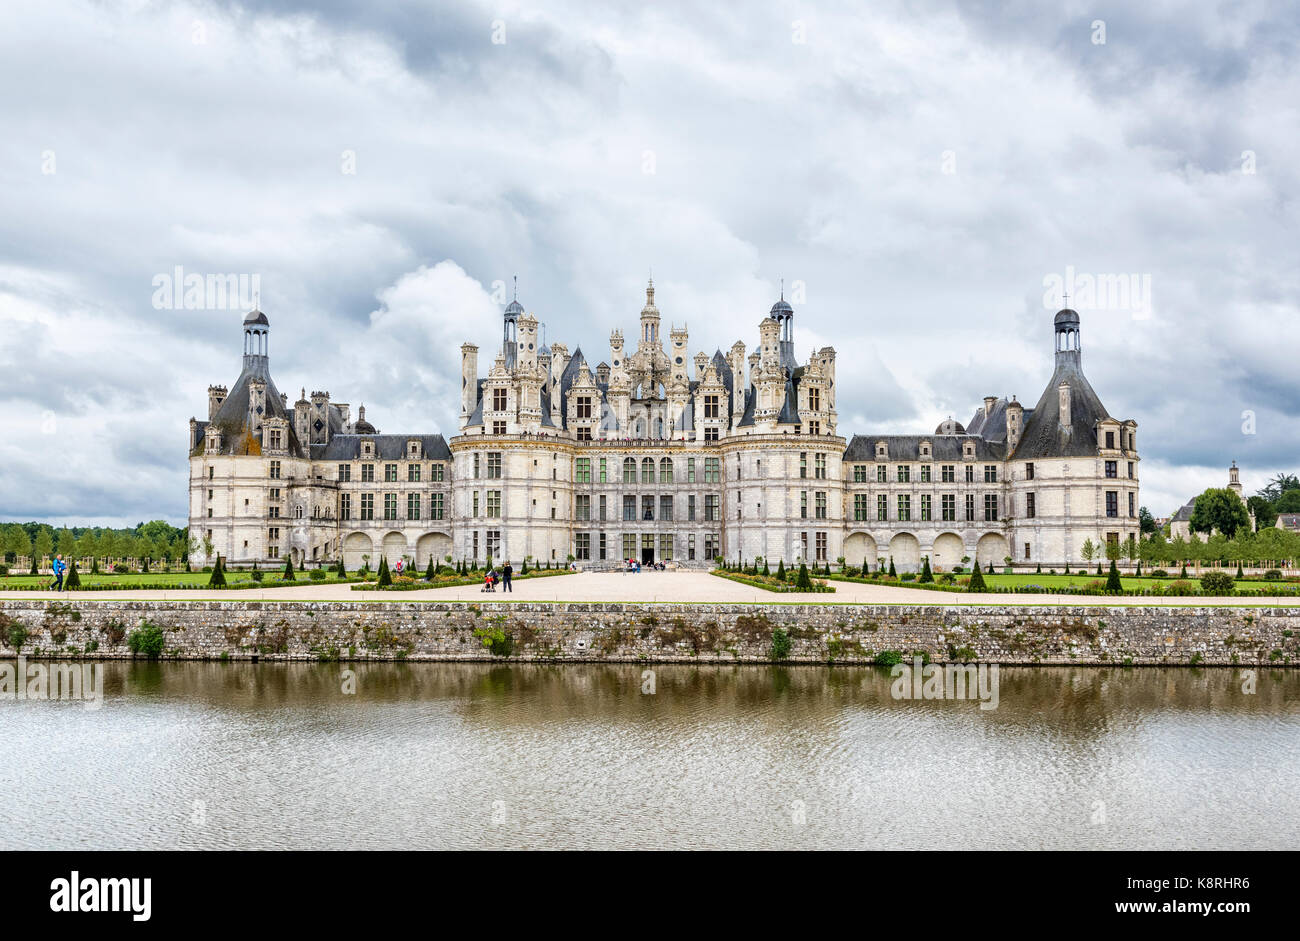 Château de Chambord, the largest chateau in the Loire Valley, Loir-et-Cher, France - Stock Image